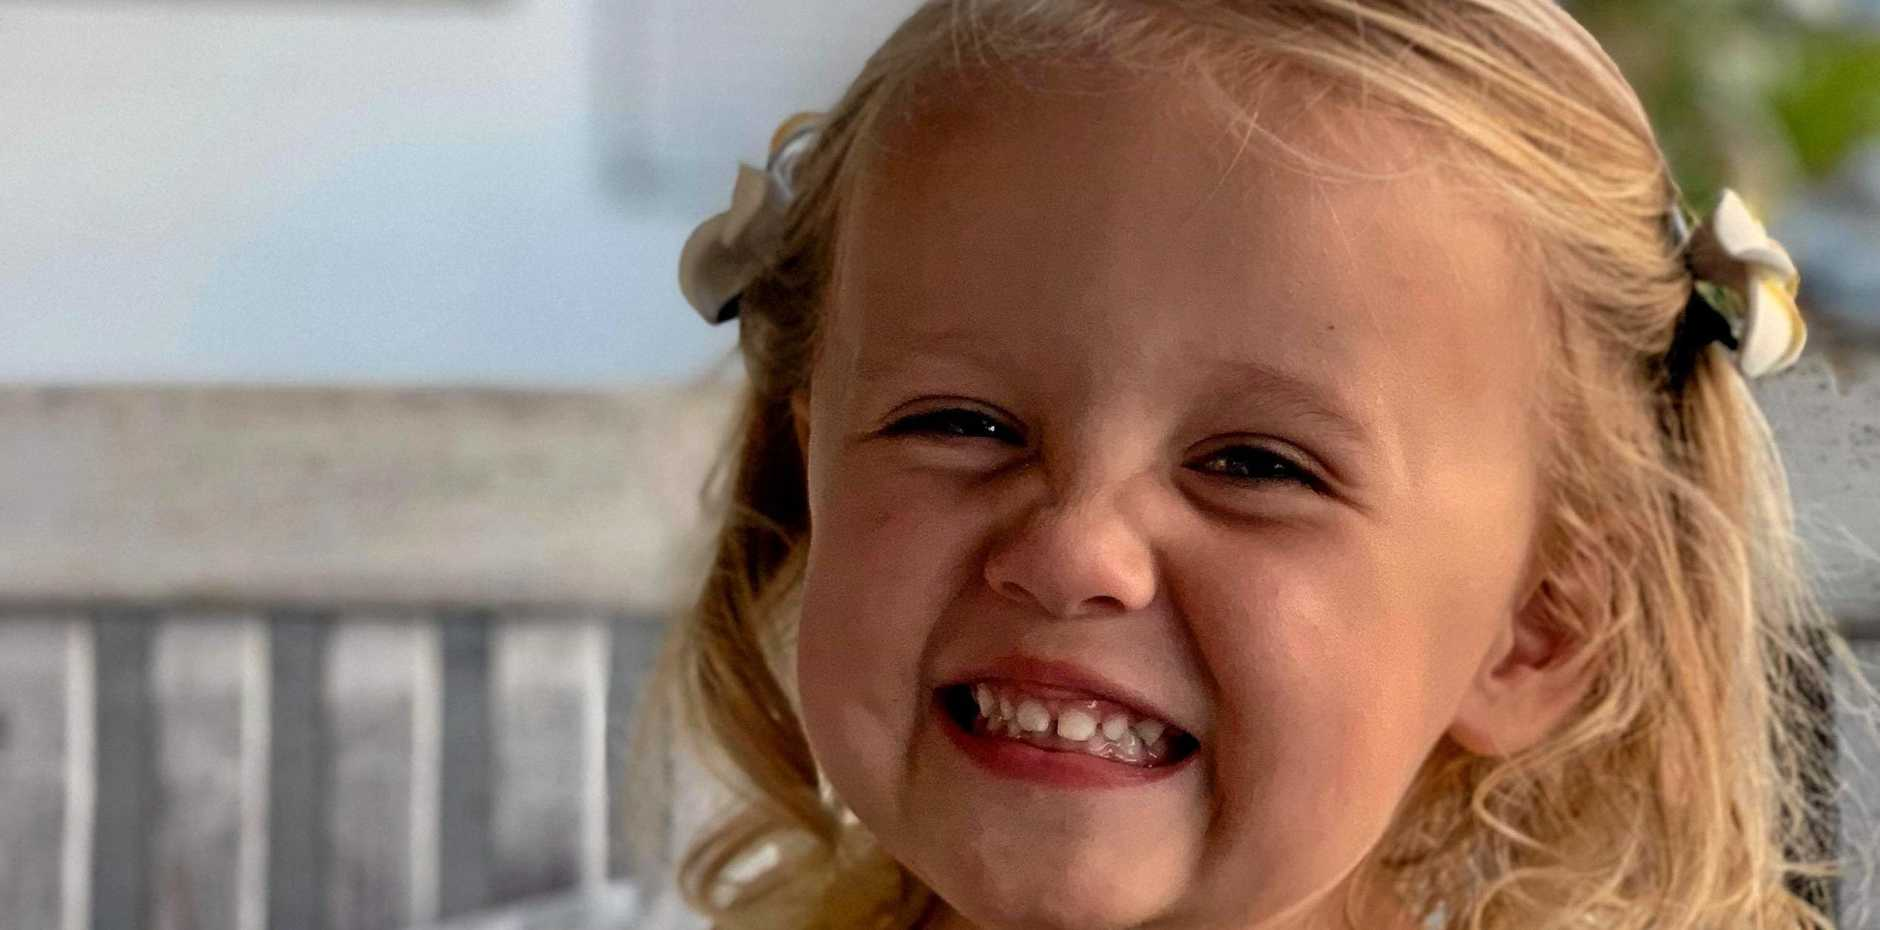 SPEEDY RECOVERY: Lara Whitaker, 2, is in a critical condition after a freak race accident.